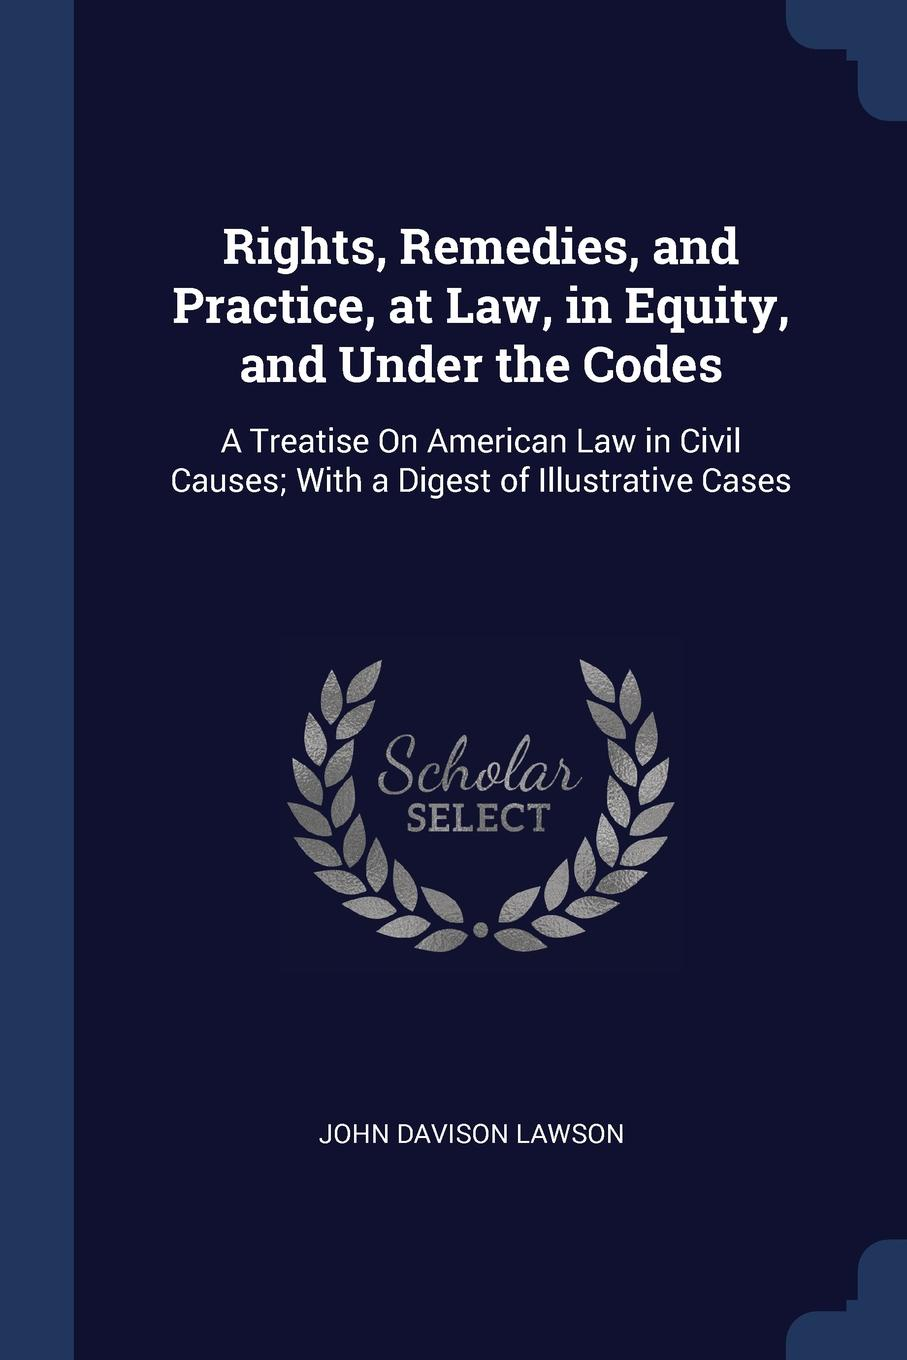 John Davison Lawson Rights, Remedies, and Practice, at Law, in Equity, Under the Codes. A Treatise On American Law Civil Causes; With a Digest of Illustrative Cases